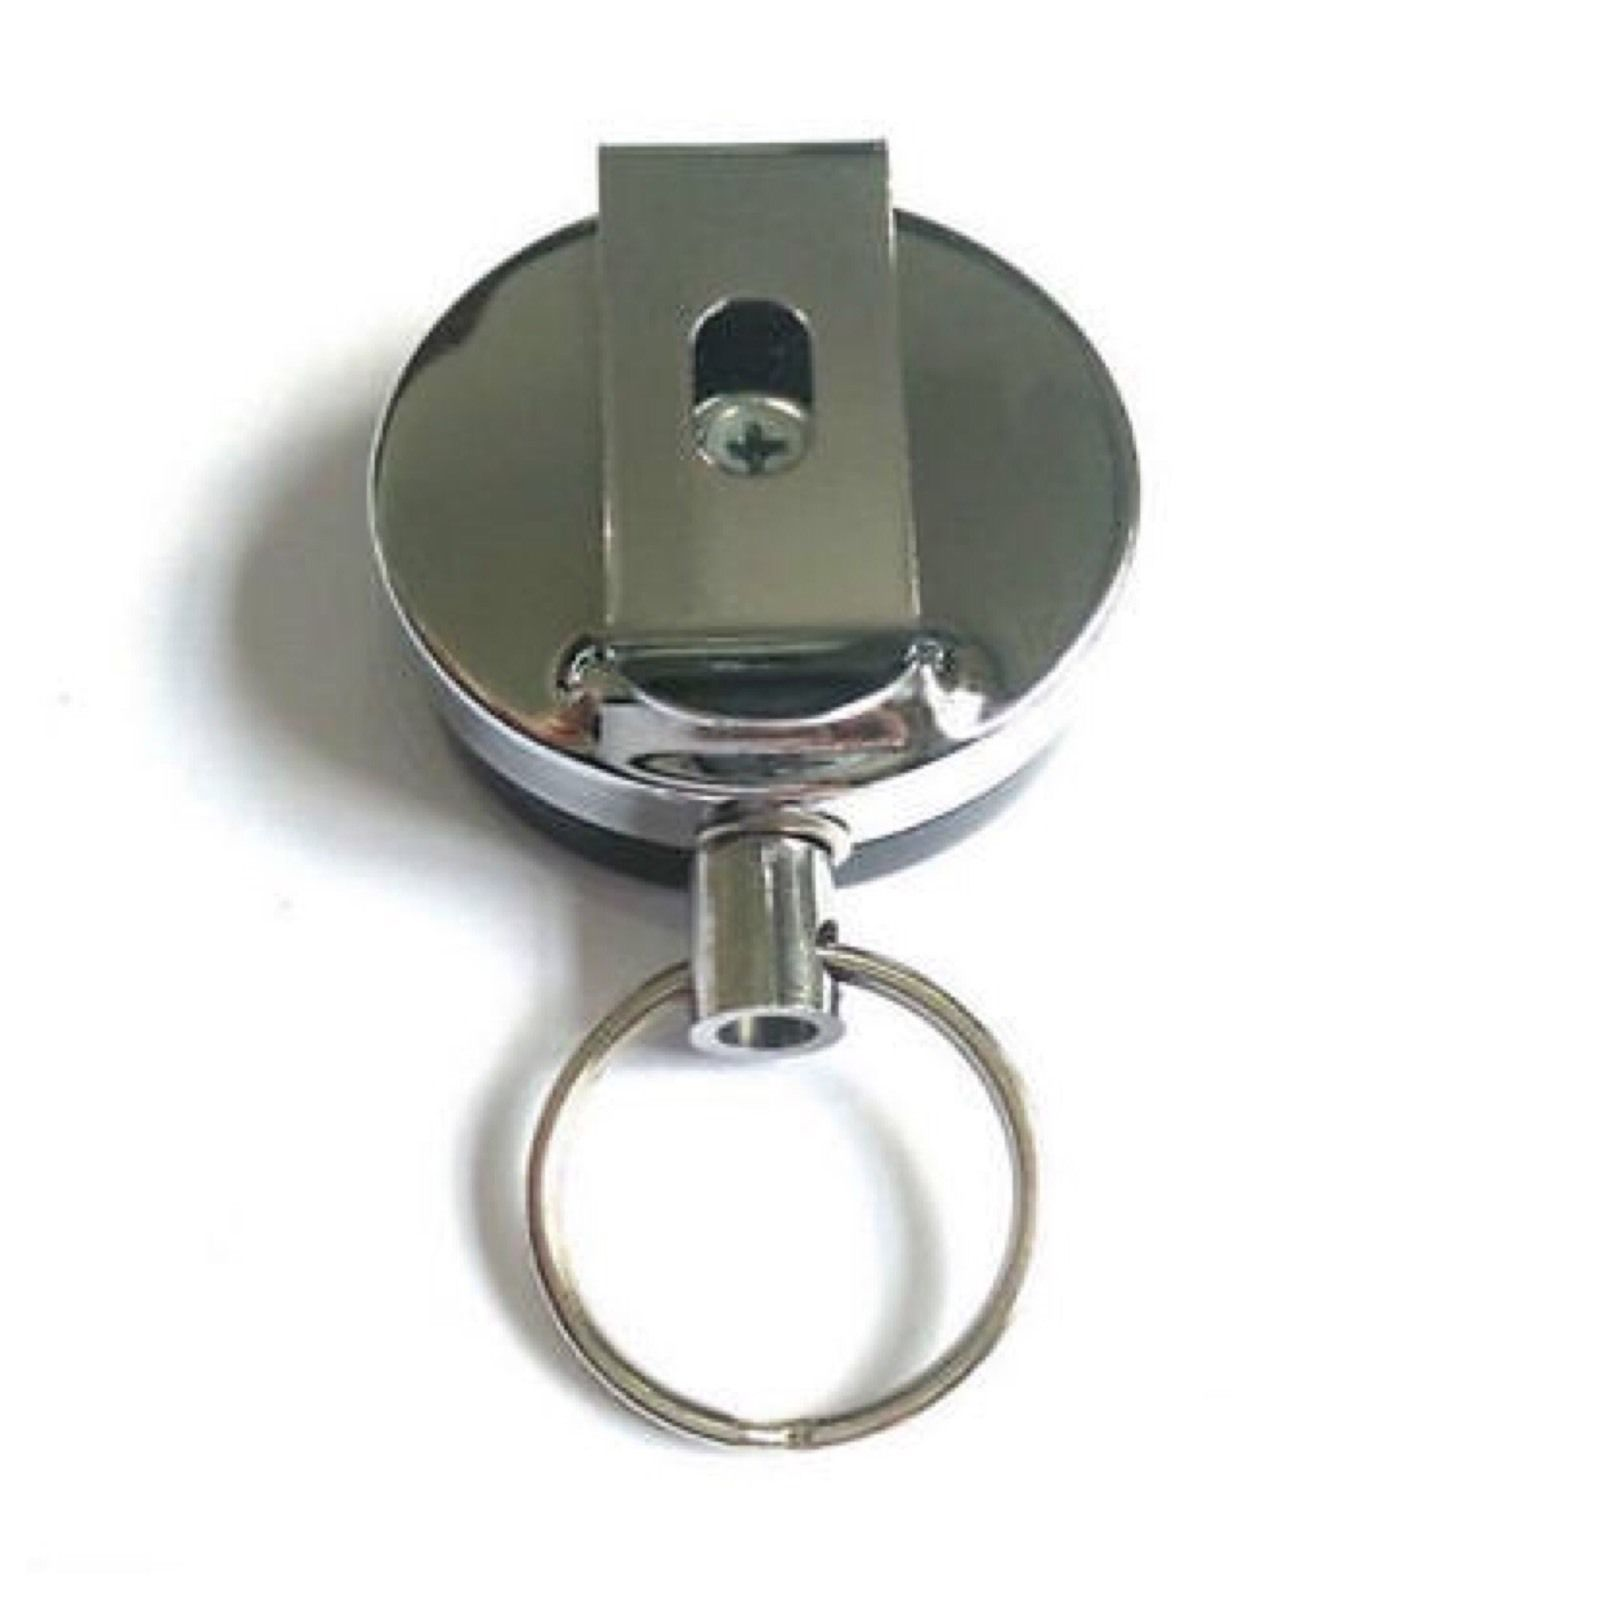 Key Chain Metal Card Badge Holder Steel Recoil Ring Belt Clip Pull Key A15